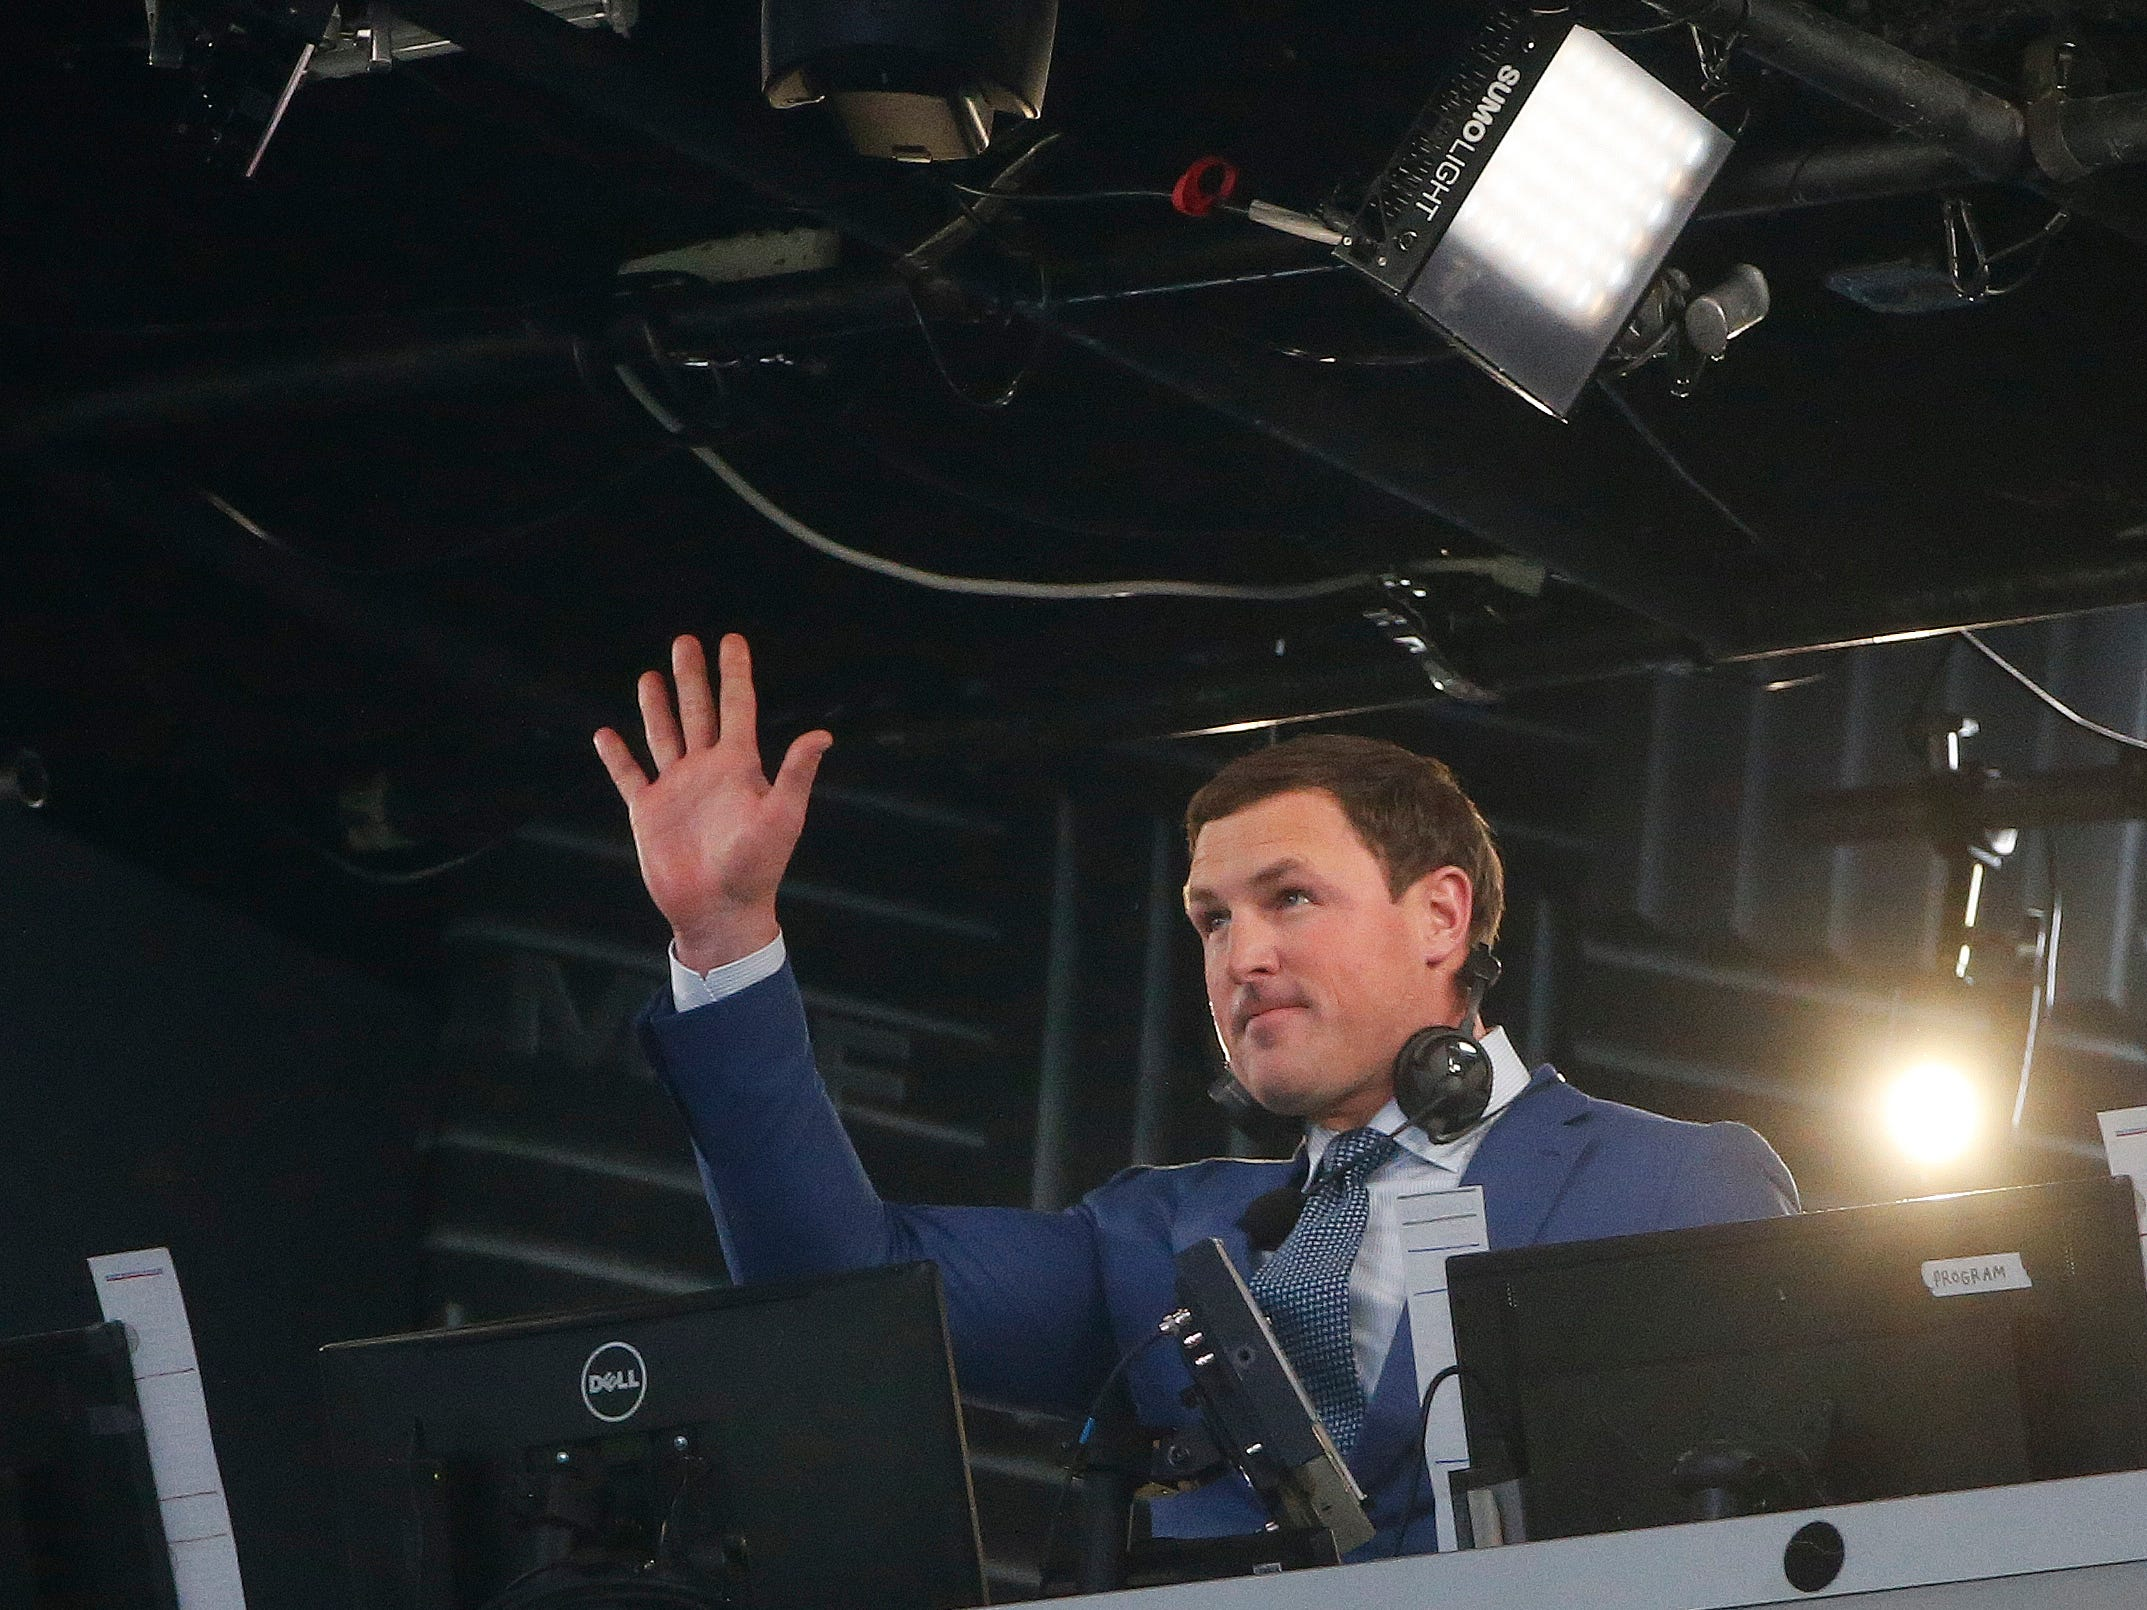 Former NFL player Jason Witten and broadcaster is recognized by the Dallas Cowboys before the first half of an NFL football game between the Dallas Cowboys and the Tennessee Titans, Monday, Nov. 5, 2018, in Arlington, Texas.